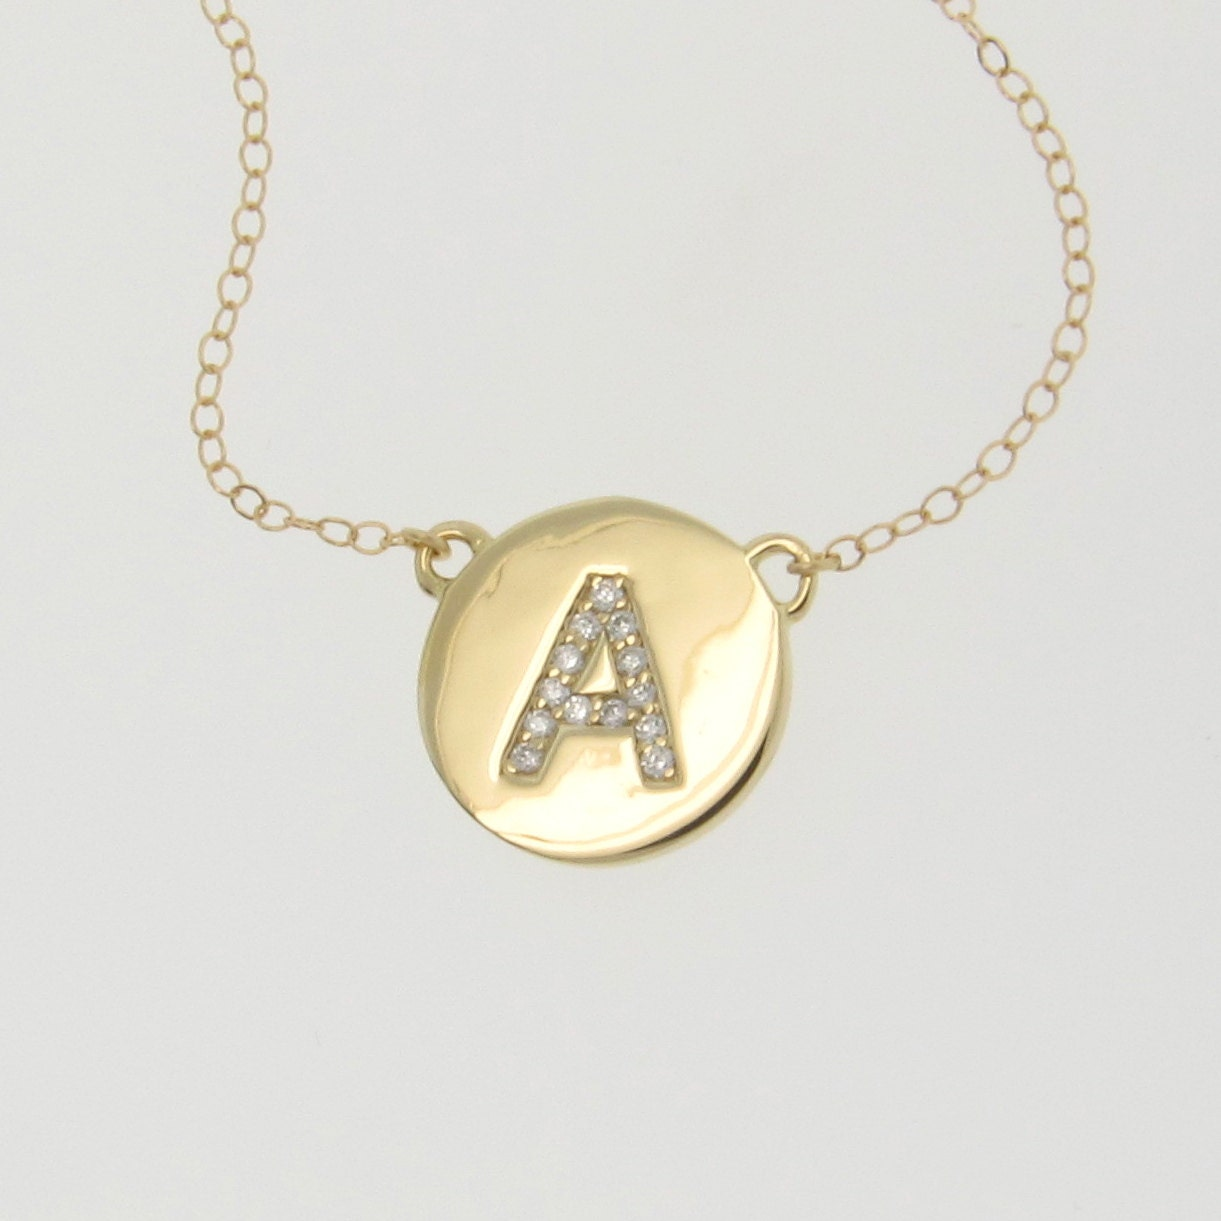 Diamond initial necklace your letter necklace 14k yellow zoom mozeypictures Choice Image